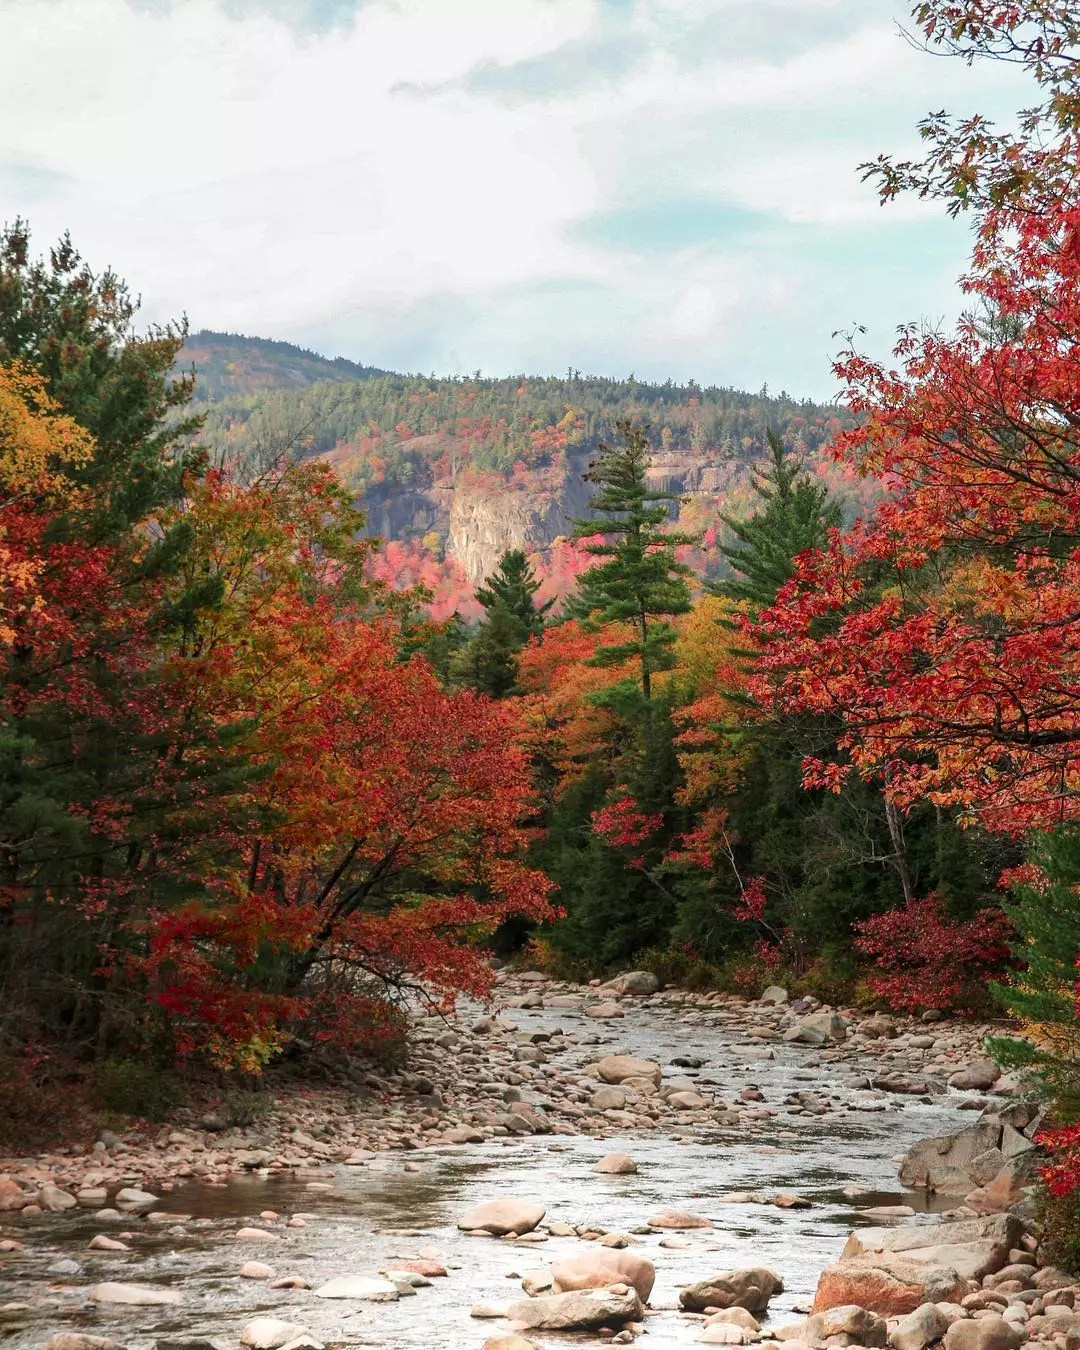 River and Forest in the Fall in Lincoln, NH. Photo by Instagram user @tononphoto